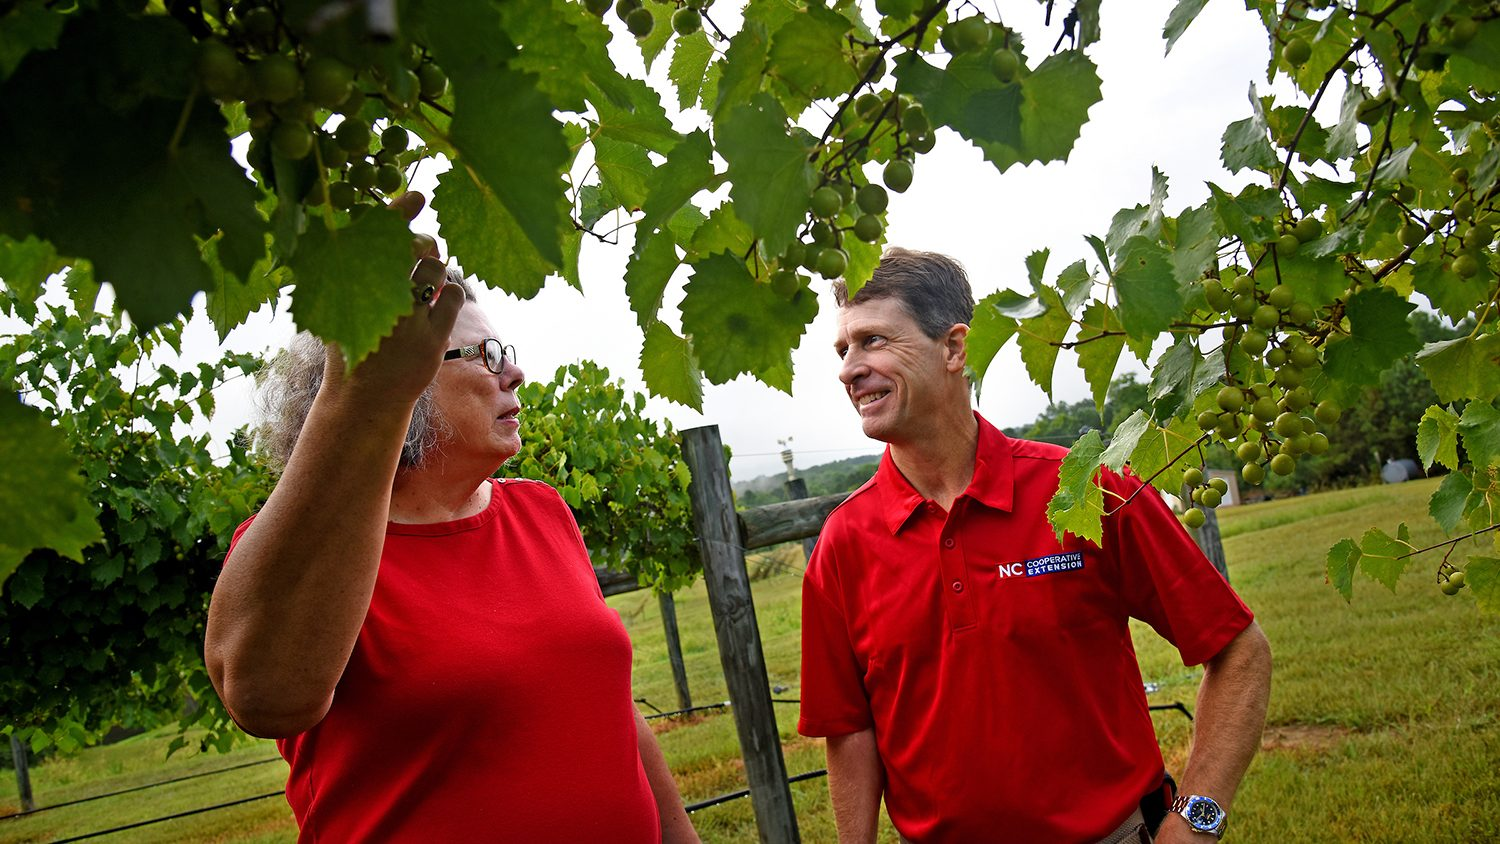 White woman and man in red shirts looking at a wine grape vine